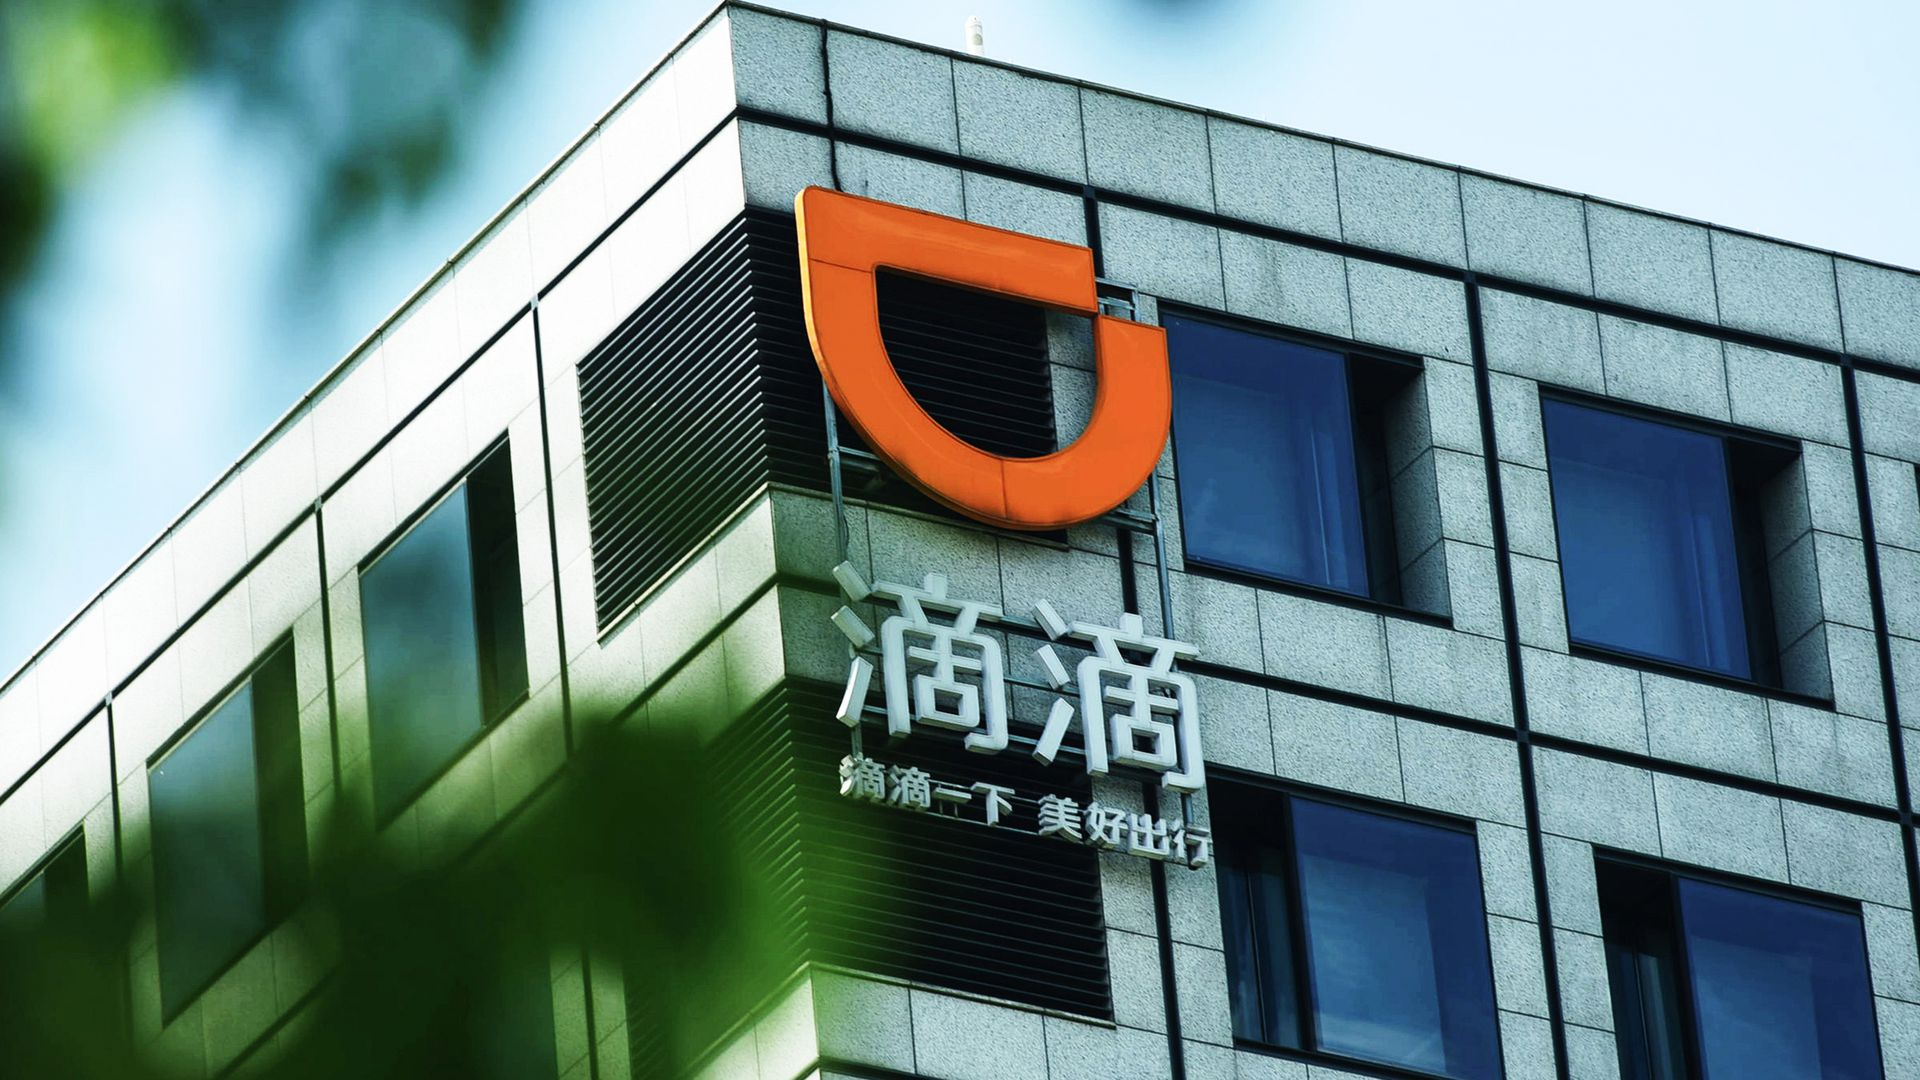 logo of Didi Chuxing displayed on a building in Hangzhou in China's eastern Zhejiang province